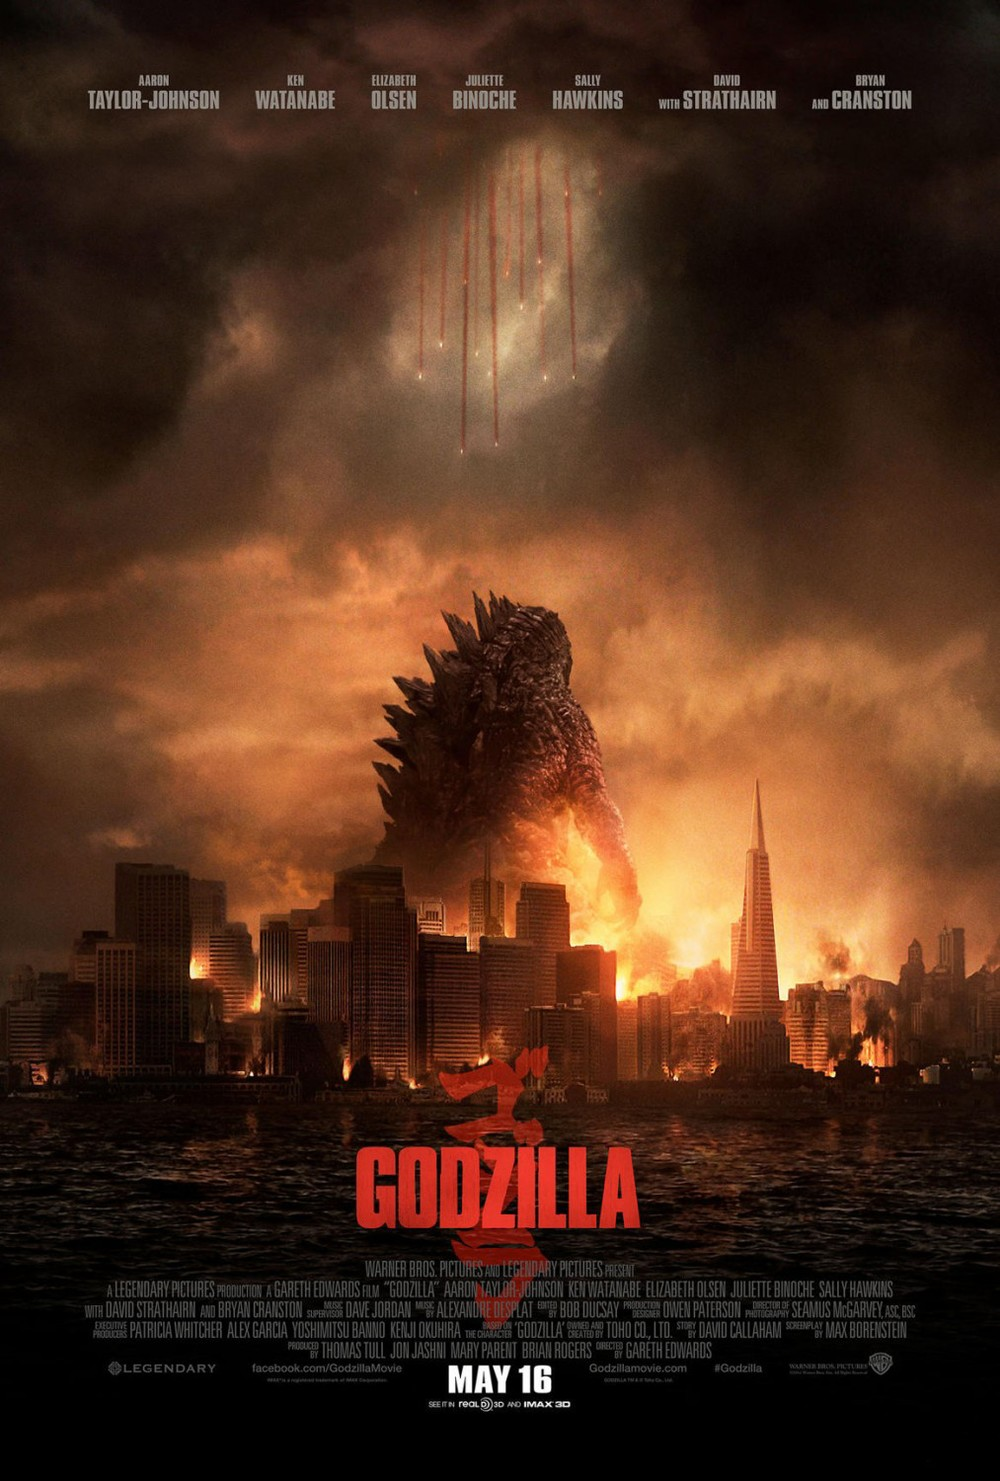 There are more well-designed and more unique posters that have been out this year, but in the context of film marketing and overall visual aesthetics, this poster soars above the rest. This is a beautiful and striking poster that shows the scale and magnitude of Godzilla like no others have.  Dead center, the focus of attention is clearly Godzilla, who towers above a city that is in the process of being destroyed. From the heavens descend a few pinpricks of light, ready to take on the gargantuan threat below. If you've seen the poster that preceded this (next in the slideshow), you'd know them to be people, but here it could be anything (for better or worse).  Either way, this poster conveys such an ample threat and shows just how huge the stakes are right away. You come to this film to see a gigantic nuclear lizard fuck up a city, and see a bunch of tiny humans try to stop it. It's classic giant monster goodness wrapped up in a nice modern package.   The movie itself turned out to be a bit of a letdown, and Godzilla isn't NEARLY as tall in the film as he is in the poster, but still, what an image this is! Nicely done, Godzilla marketing team.  This film had a genuinely stellar marketing push overall. Click through to see a few more nice posters, including a great IMAX poster at the end.